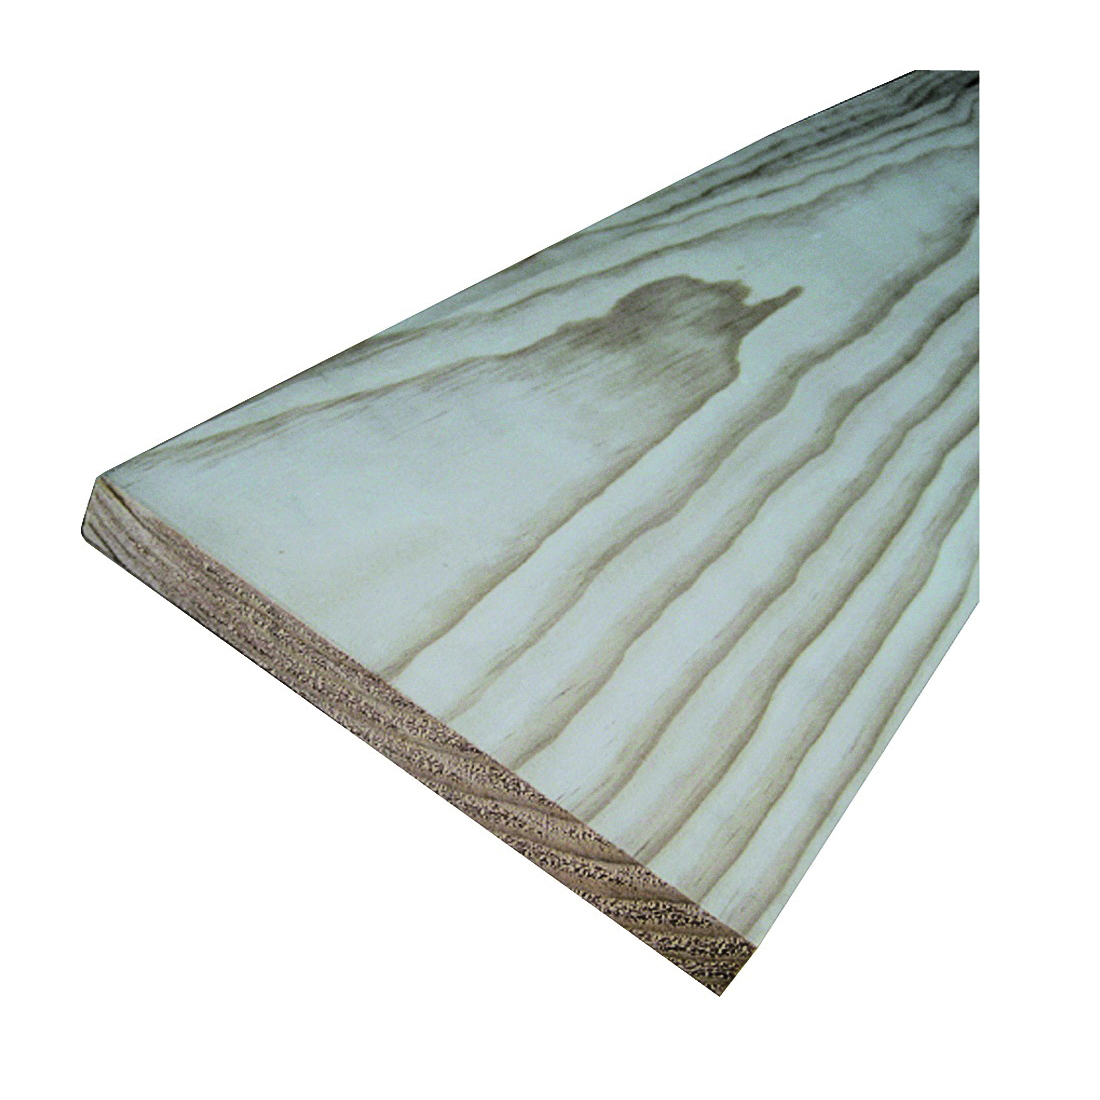 Picture of ALEXANDRIA Moulding 0Q1X6-20048C Sanded Common Board